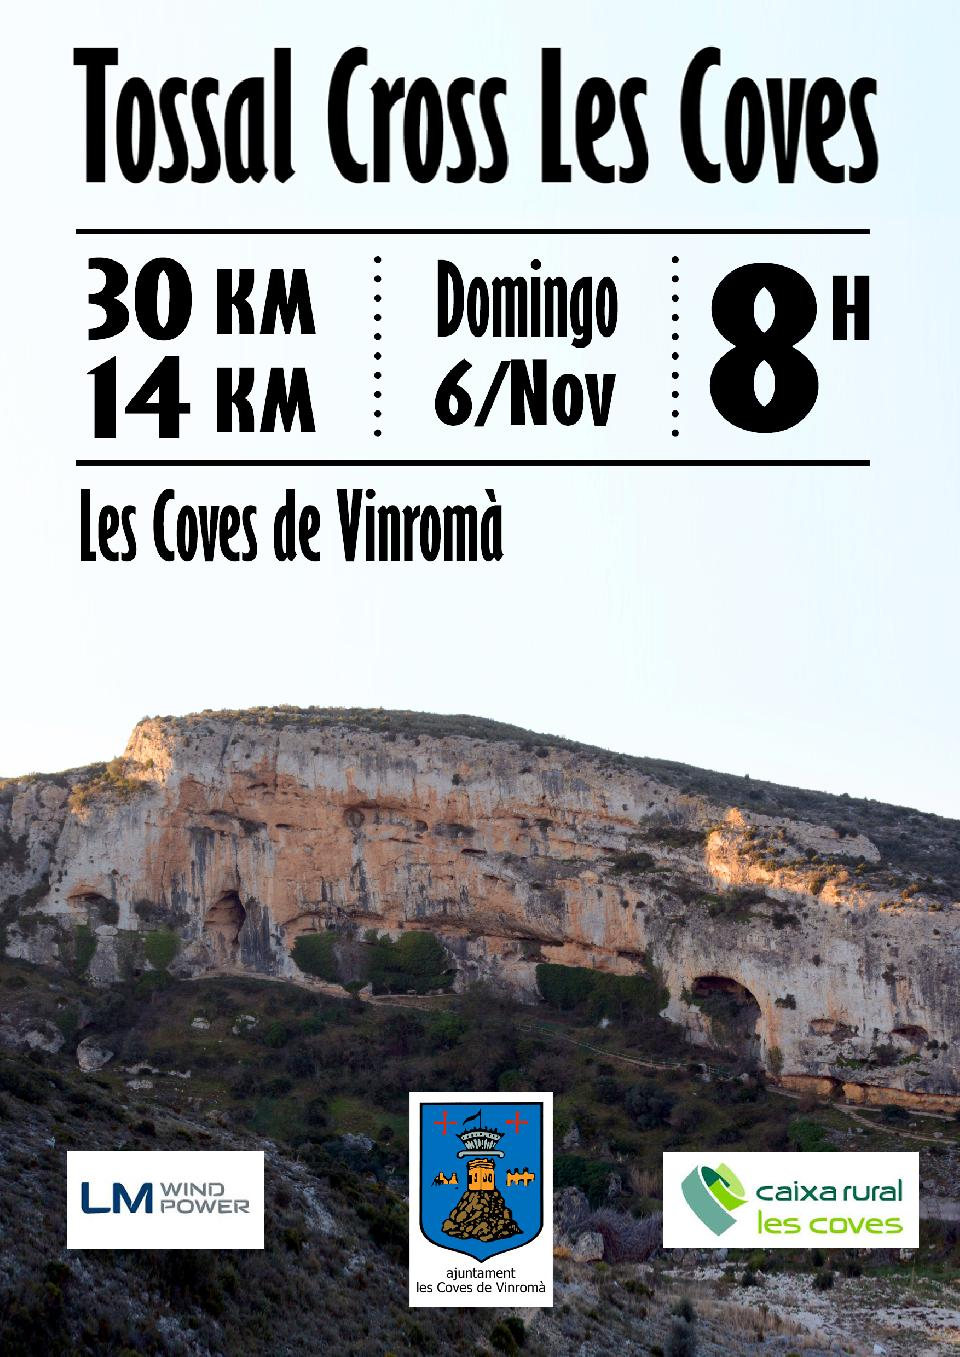 960x0x0_57f5297e-73c4-40d4-9354-16d7ac1f132f-cartel-les-coves-2016